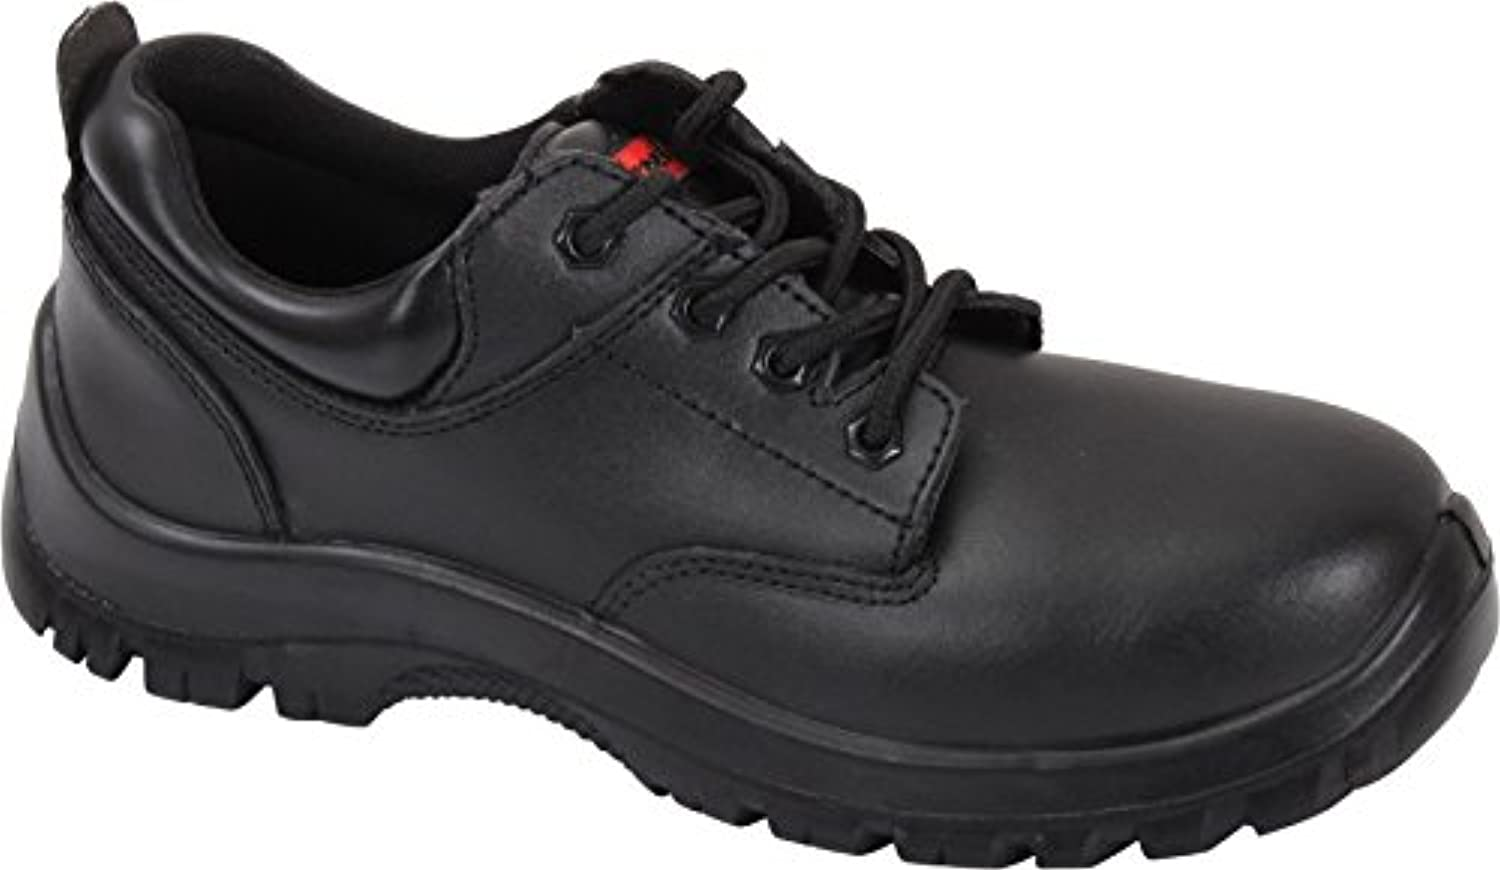 Blackrock sf32 Ultimate ZAPATO DE SEGURIDAD S3 SRC